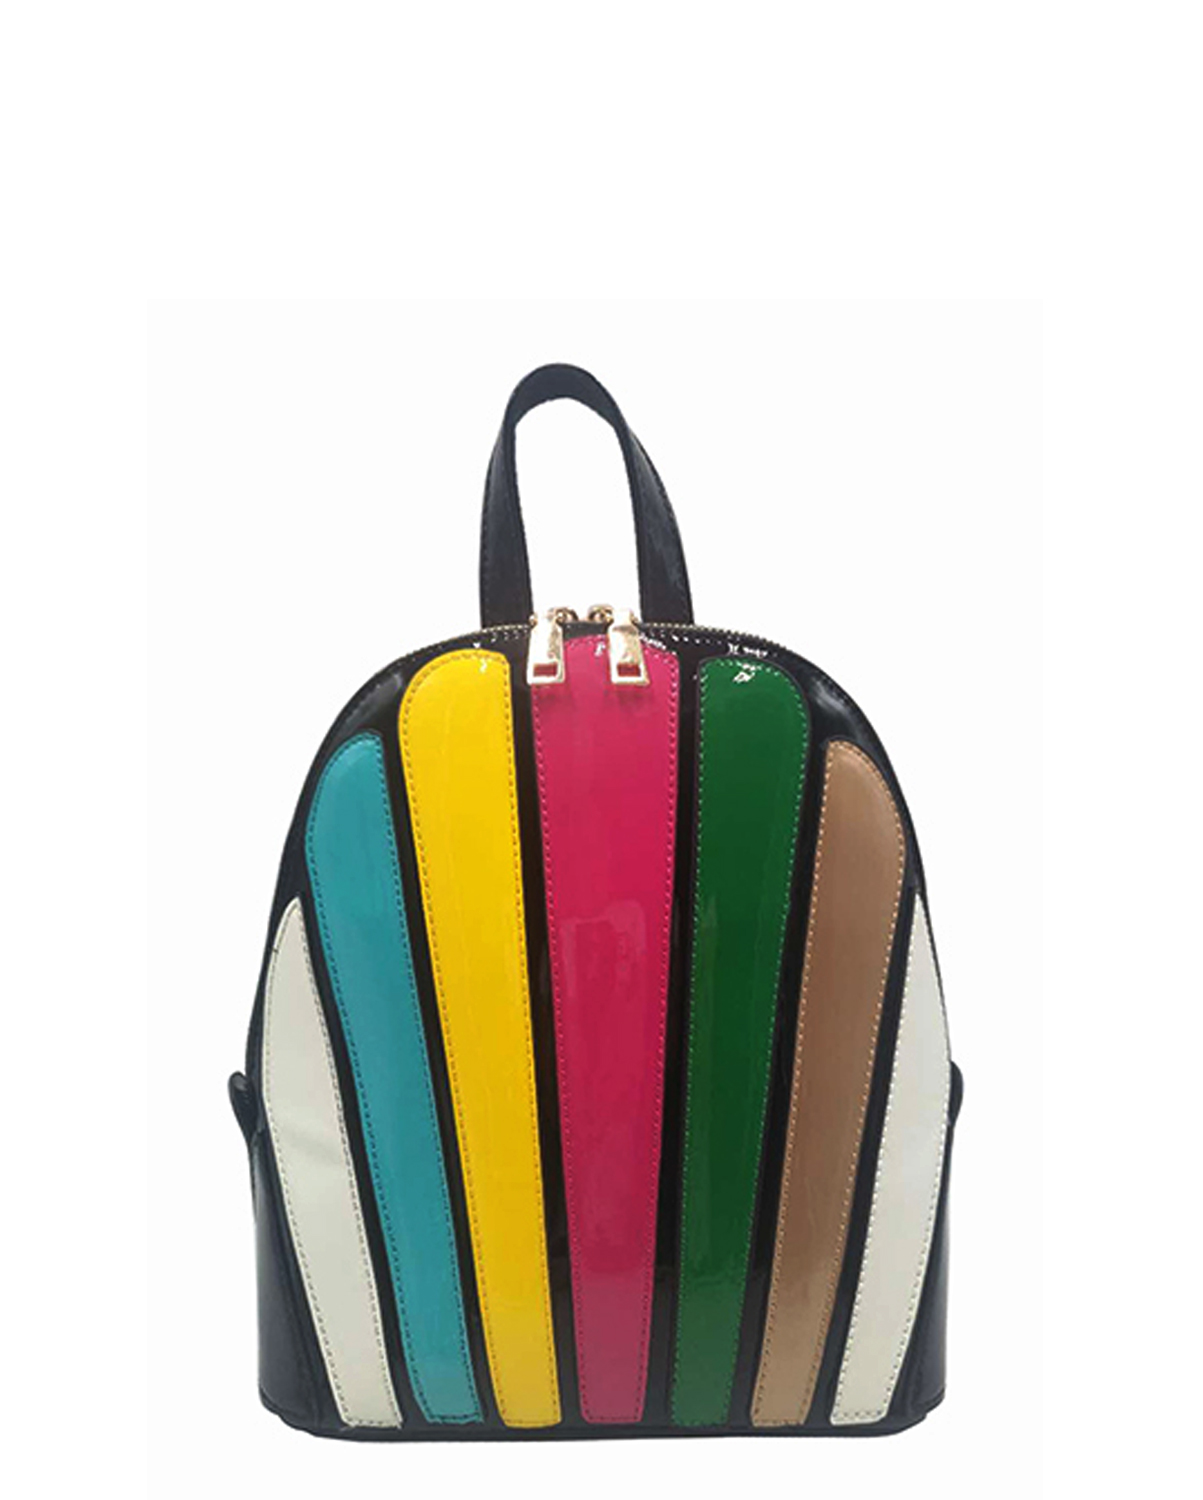 JP123(BKMUL)-wholesale-backpack-patent-faux-leather-multi-color-shell-shape-gold-canvas-strap-leatherette-shiny(0).jpg